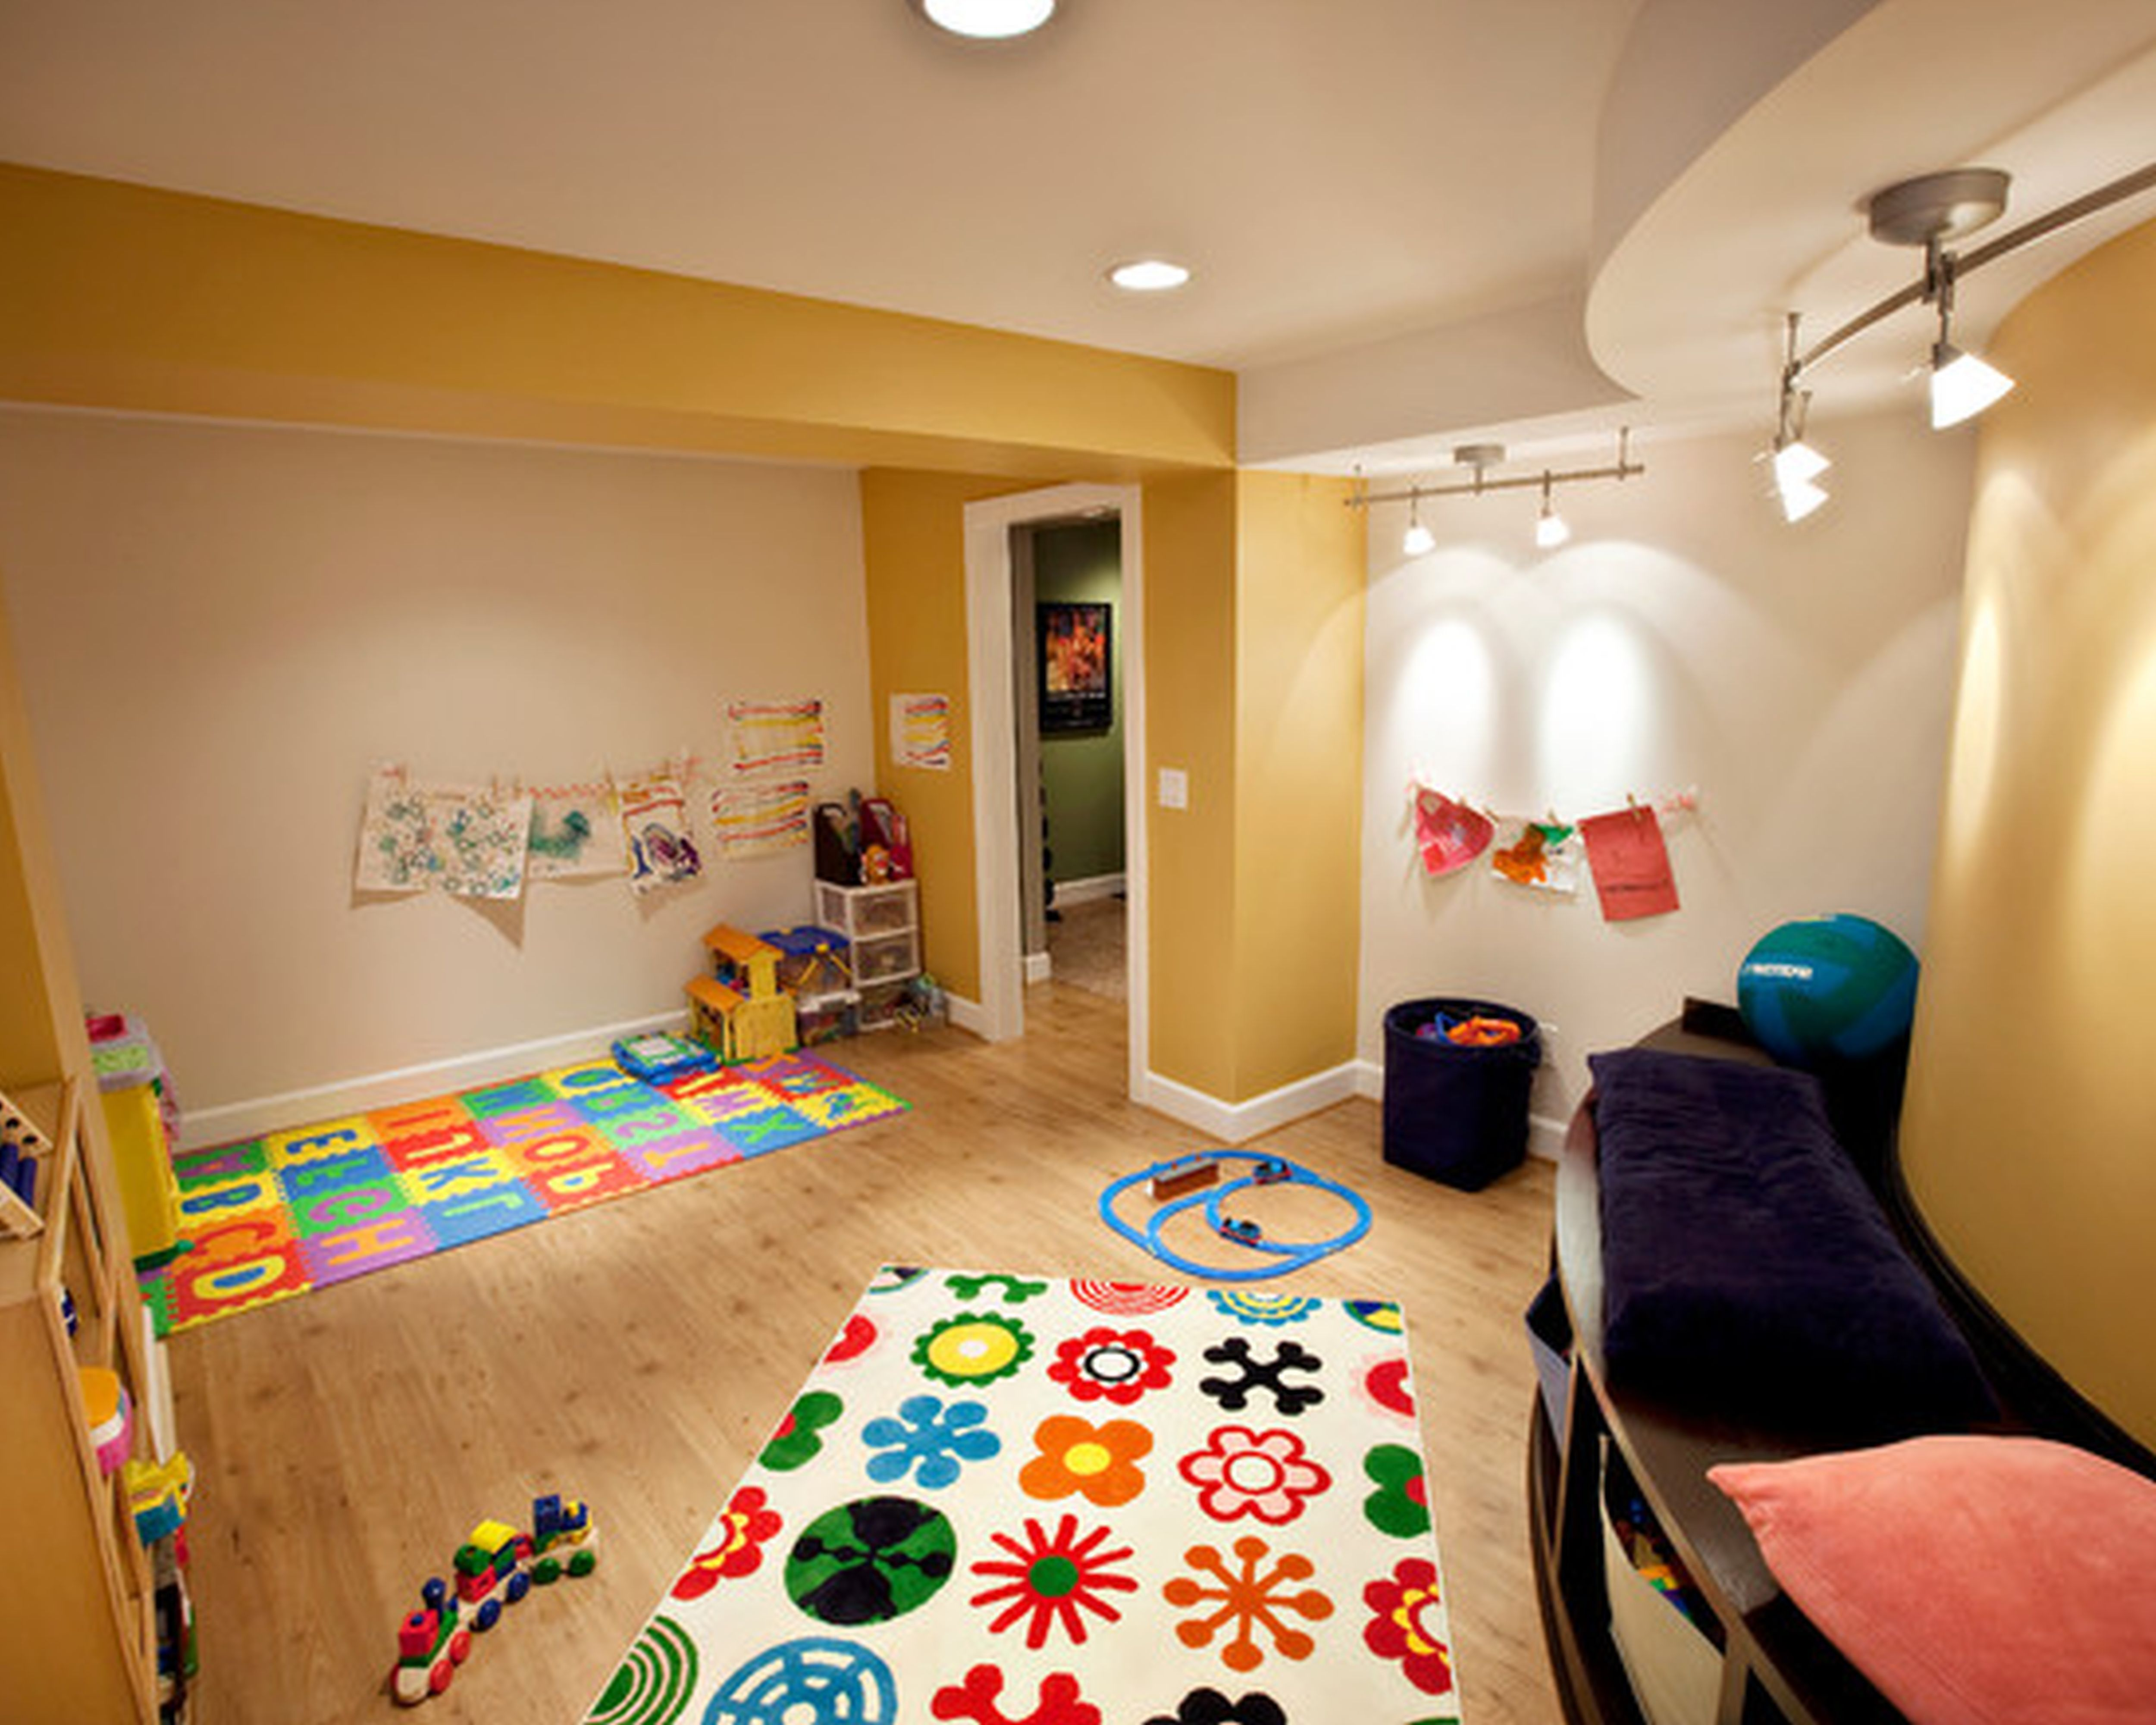 Playroom Ideas For Girls And Boys Indoor Play Basements   Inspirational  Playroom Ideas For Girls And Boys Indoor Play Basements, Unfinished Basement  ...